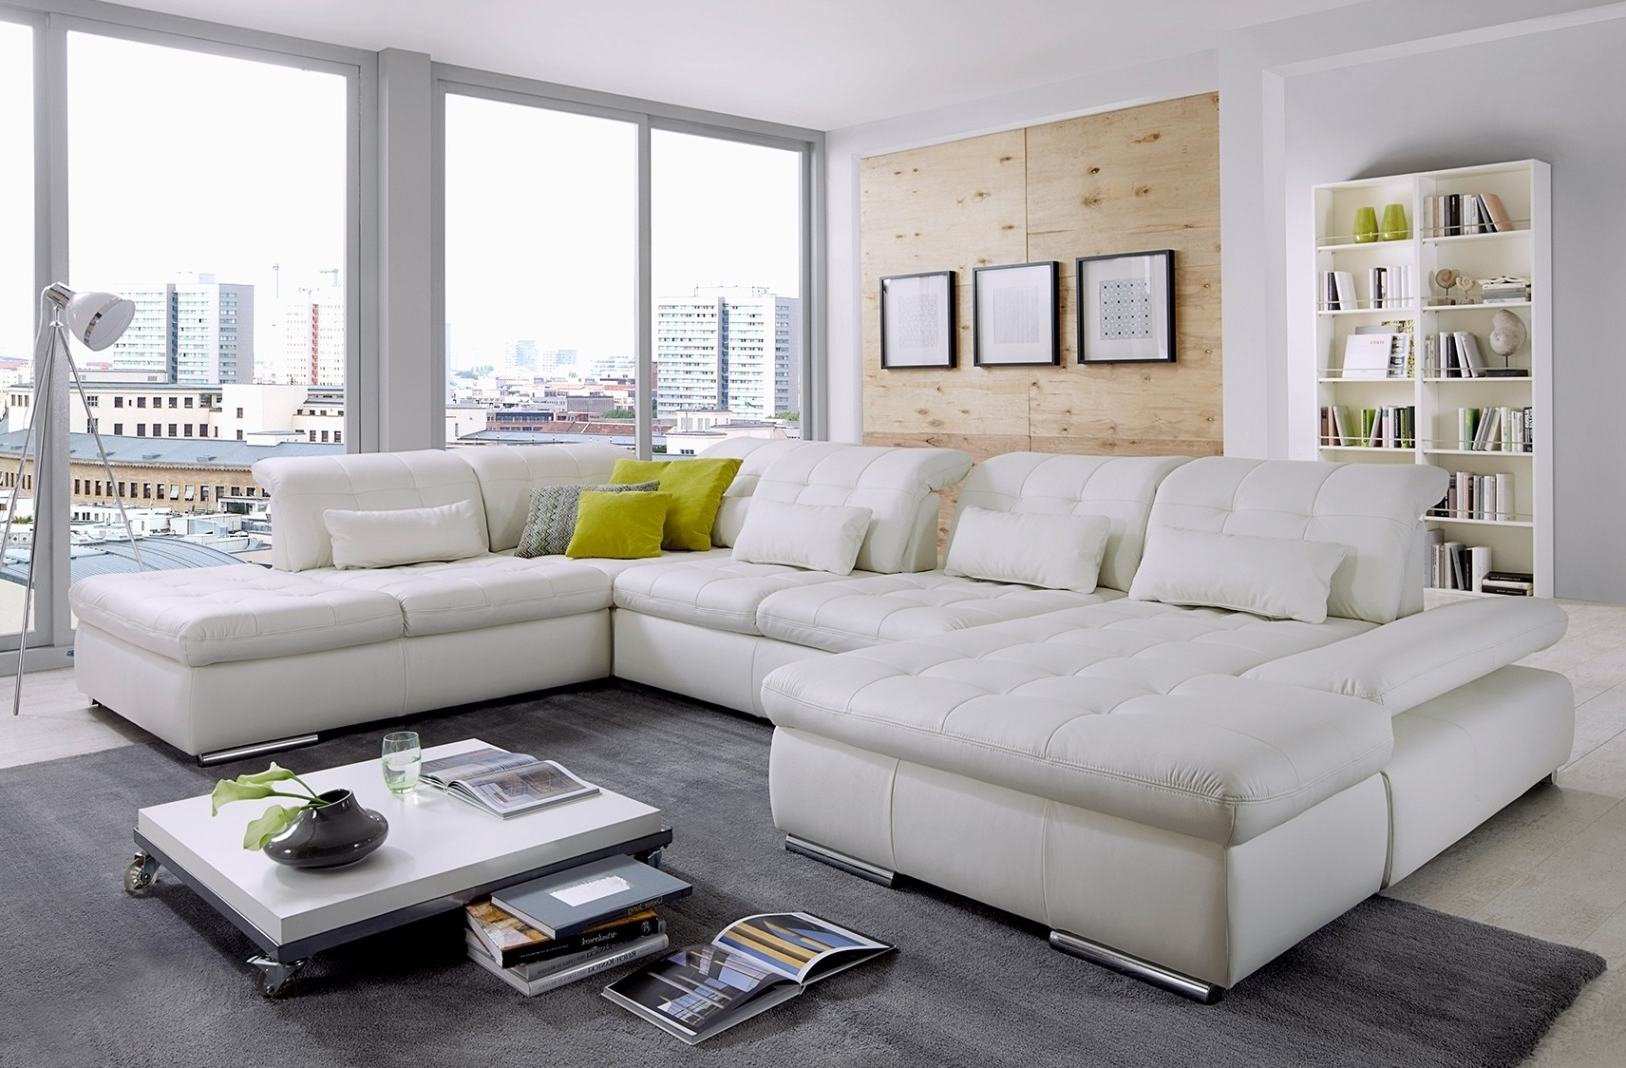 Alpine Sectional Sofa In Punch White Leather Within Latest Trinidad And Tobago Sectional Sofas (View 2 of 15)